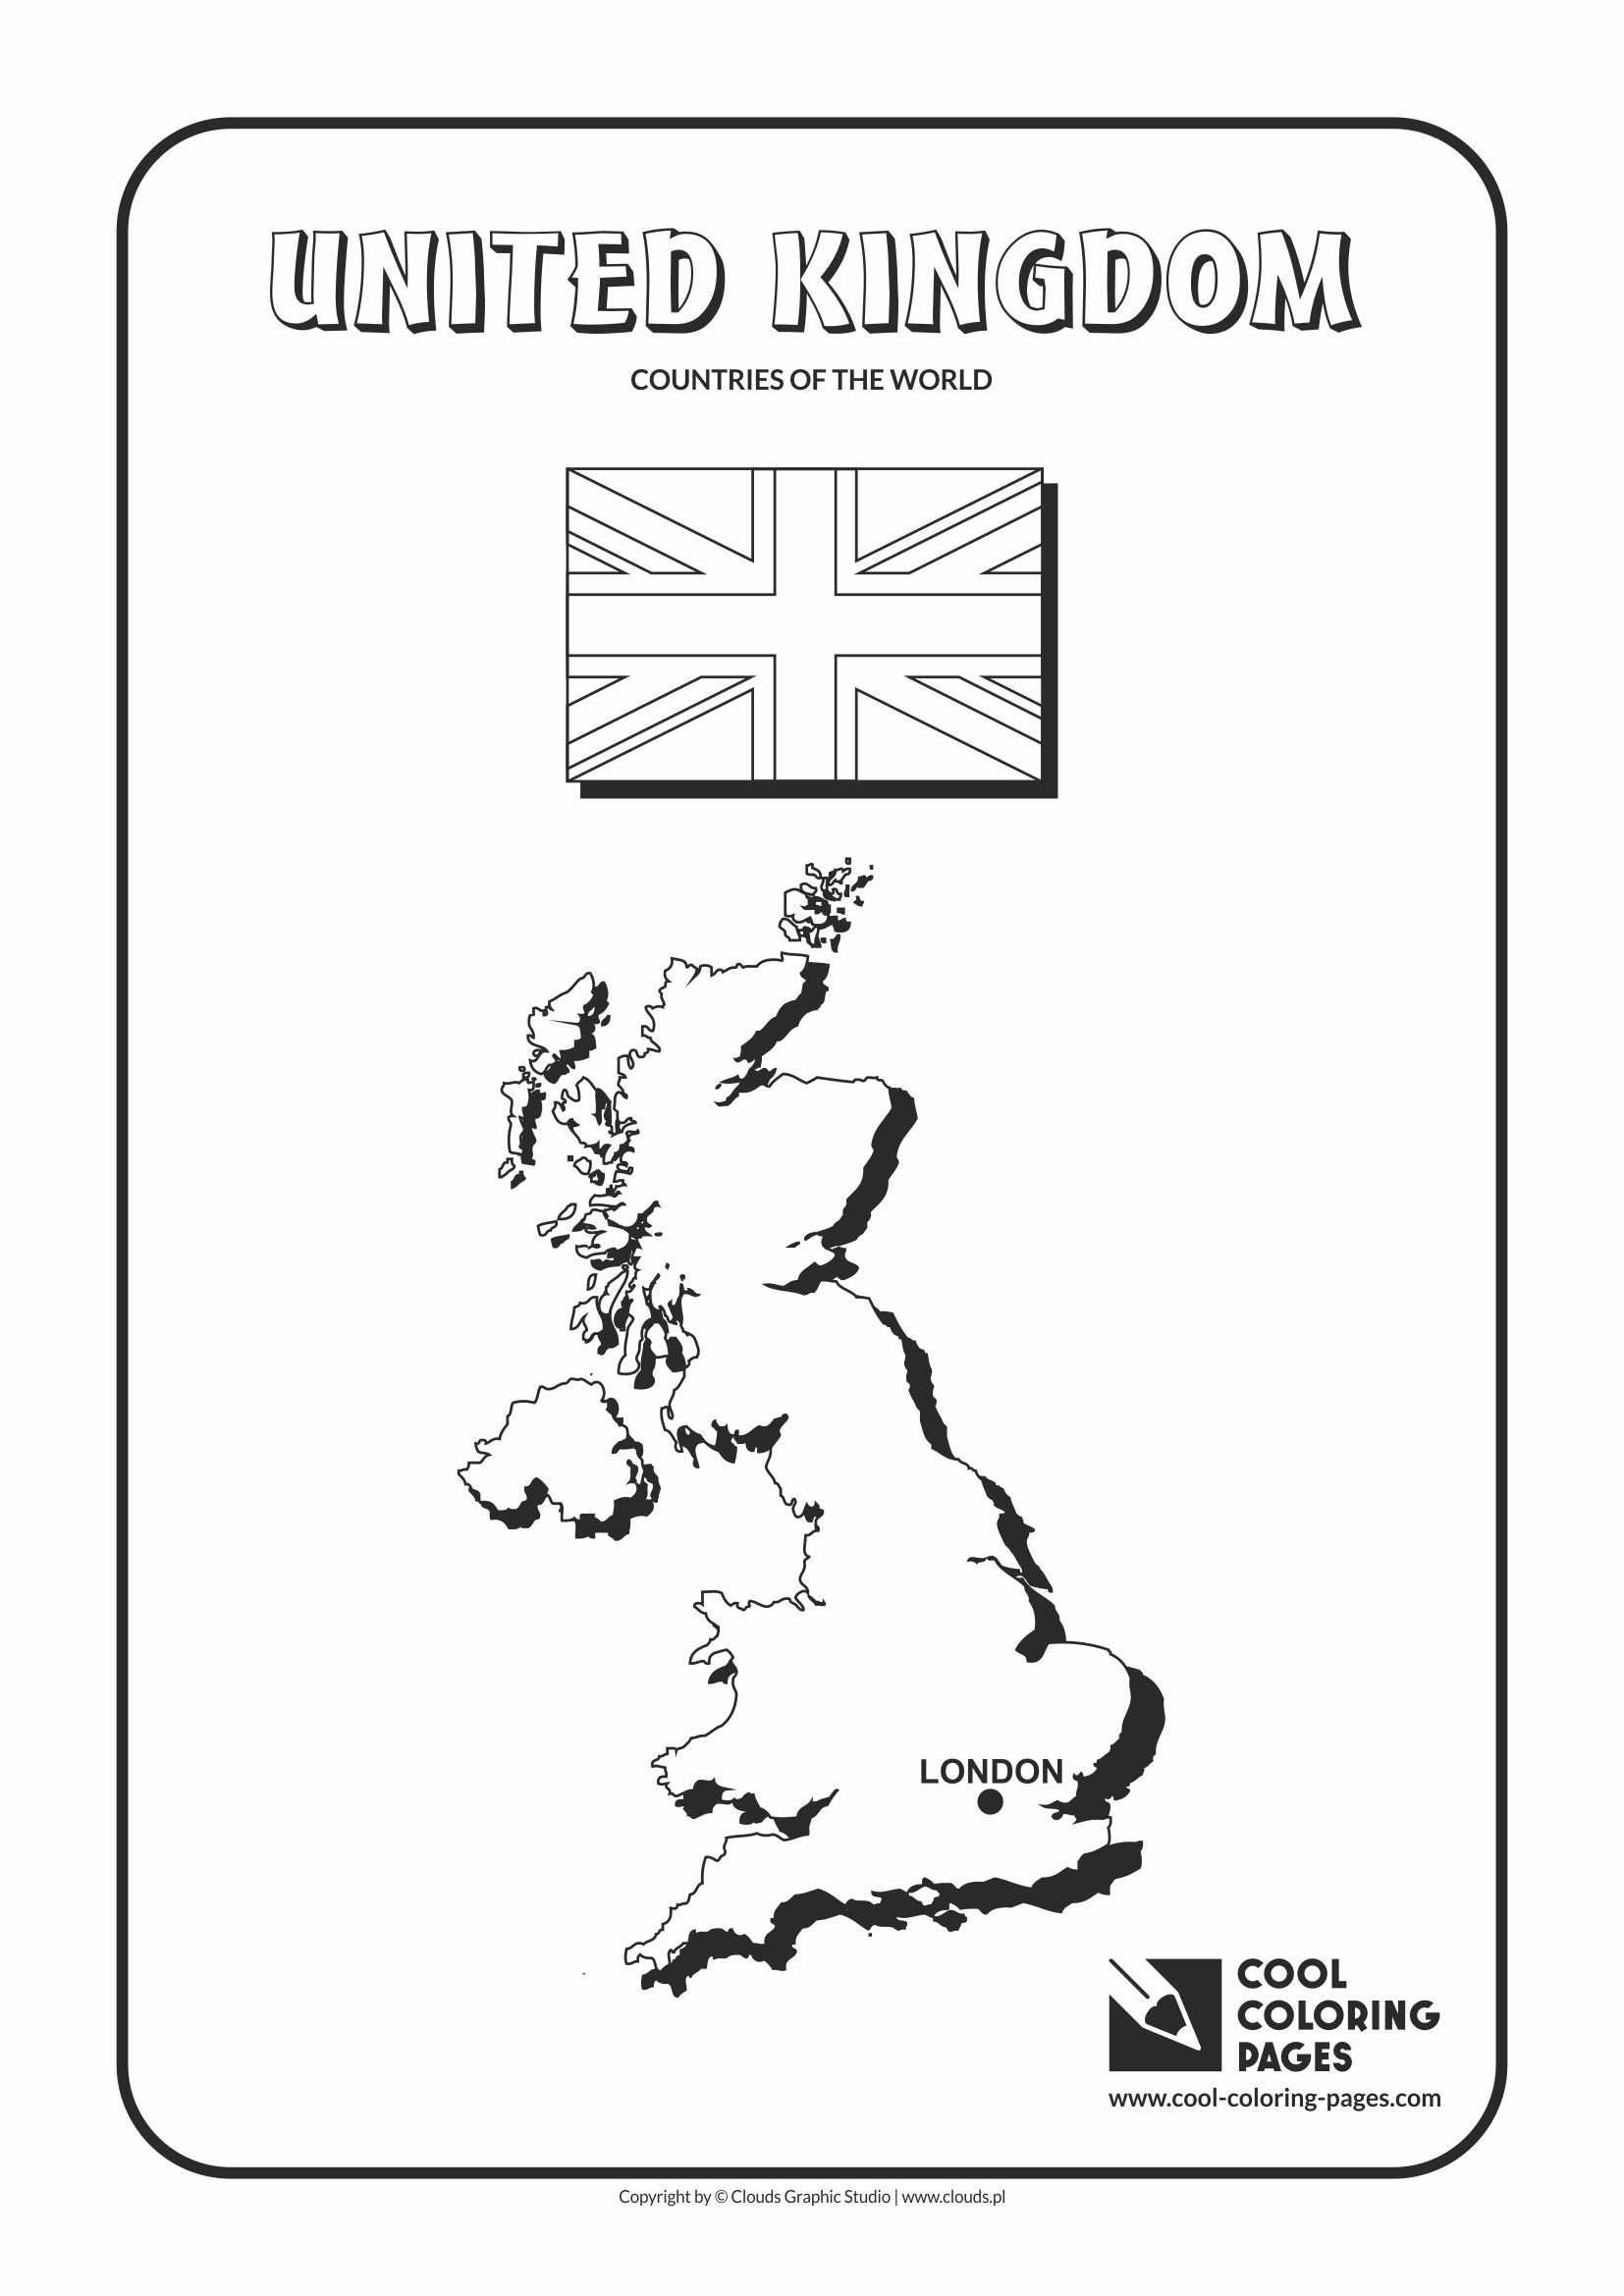 Cool Coloring Pages - Countries of the world / United Kingdom